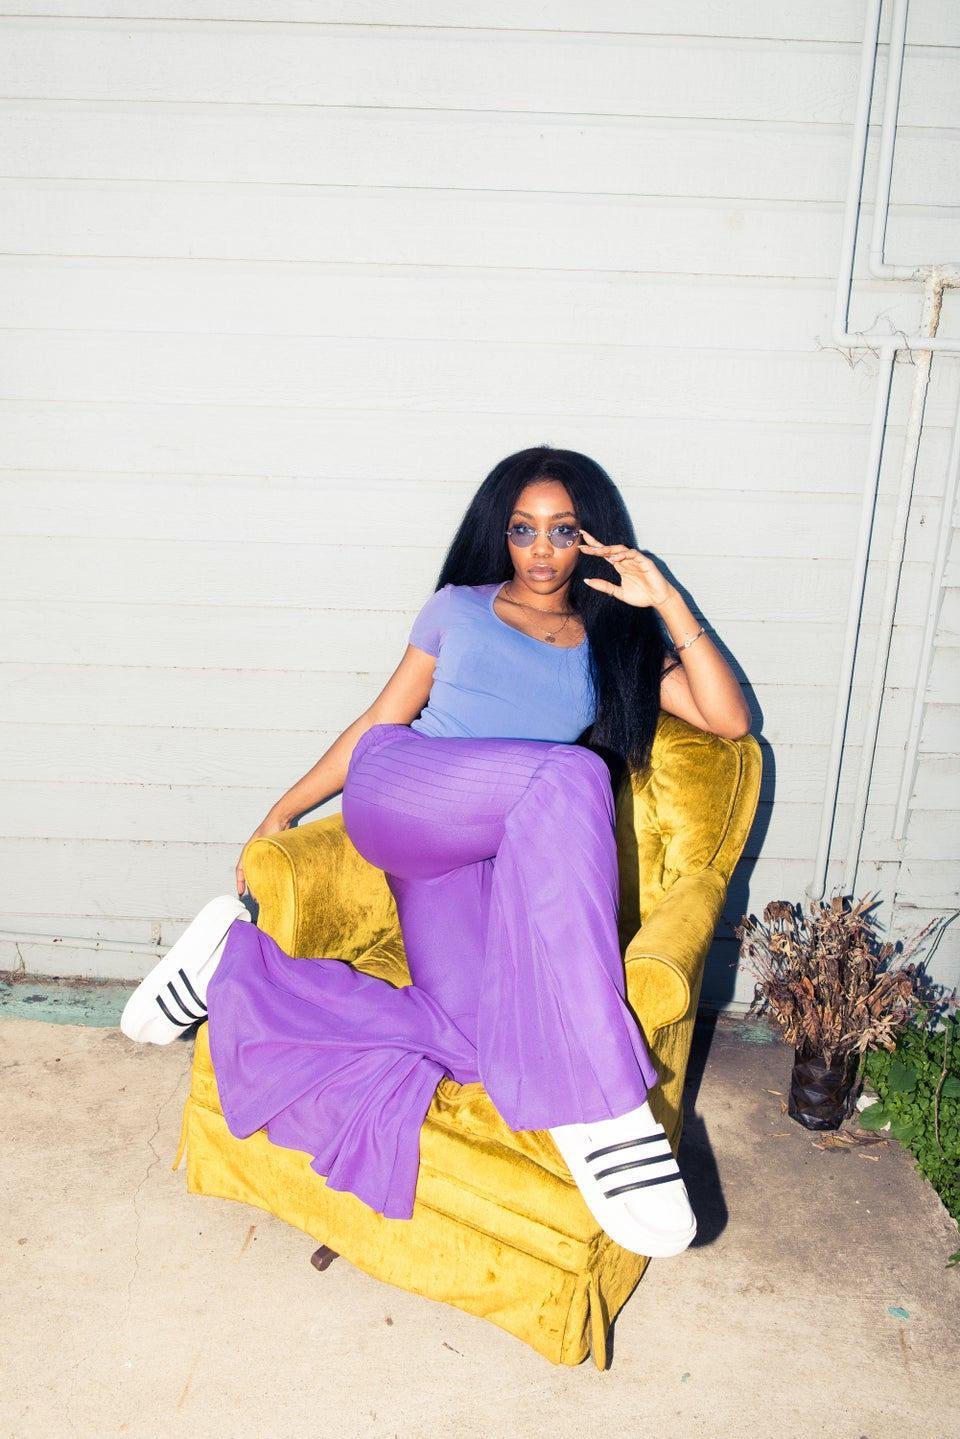 5 Things To Know About SZA's New Album, Ctrl